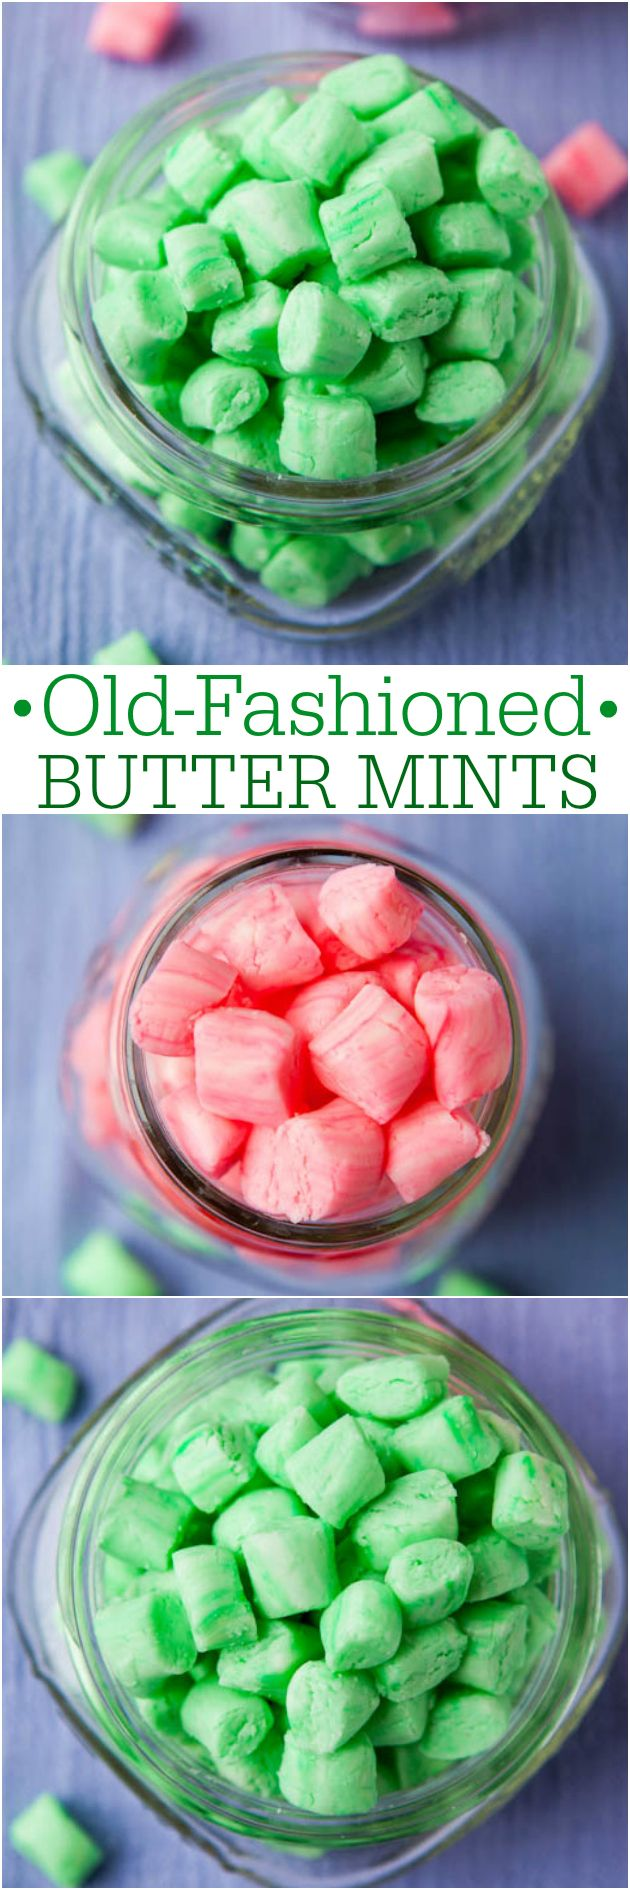 Old-Fashioned Butter Mints - Easy, no-bakken recept voor romige, gladde pepermuntjes als je oma in haar pot snoep of dat je in een restaurant zou krijgen gehouden!